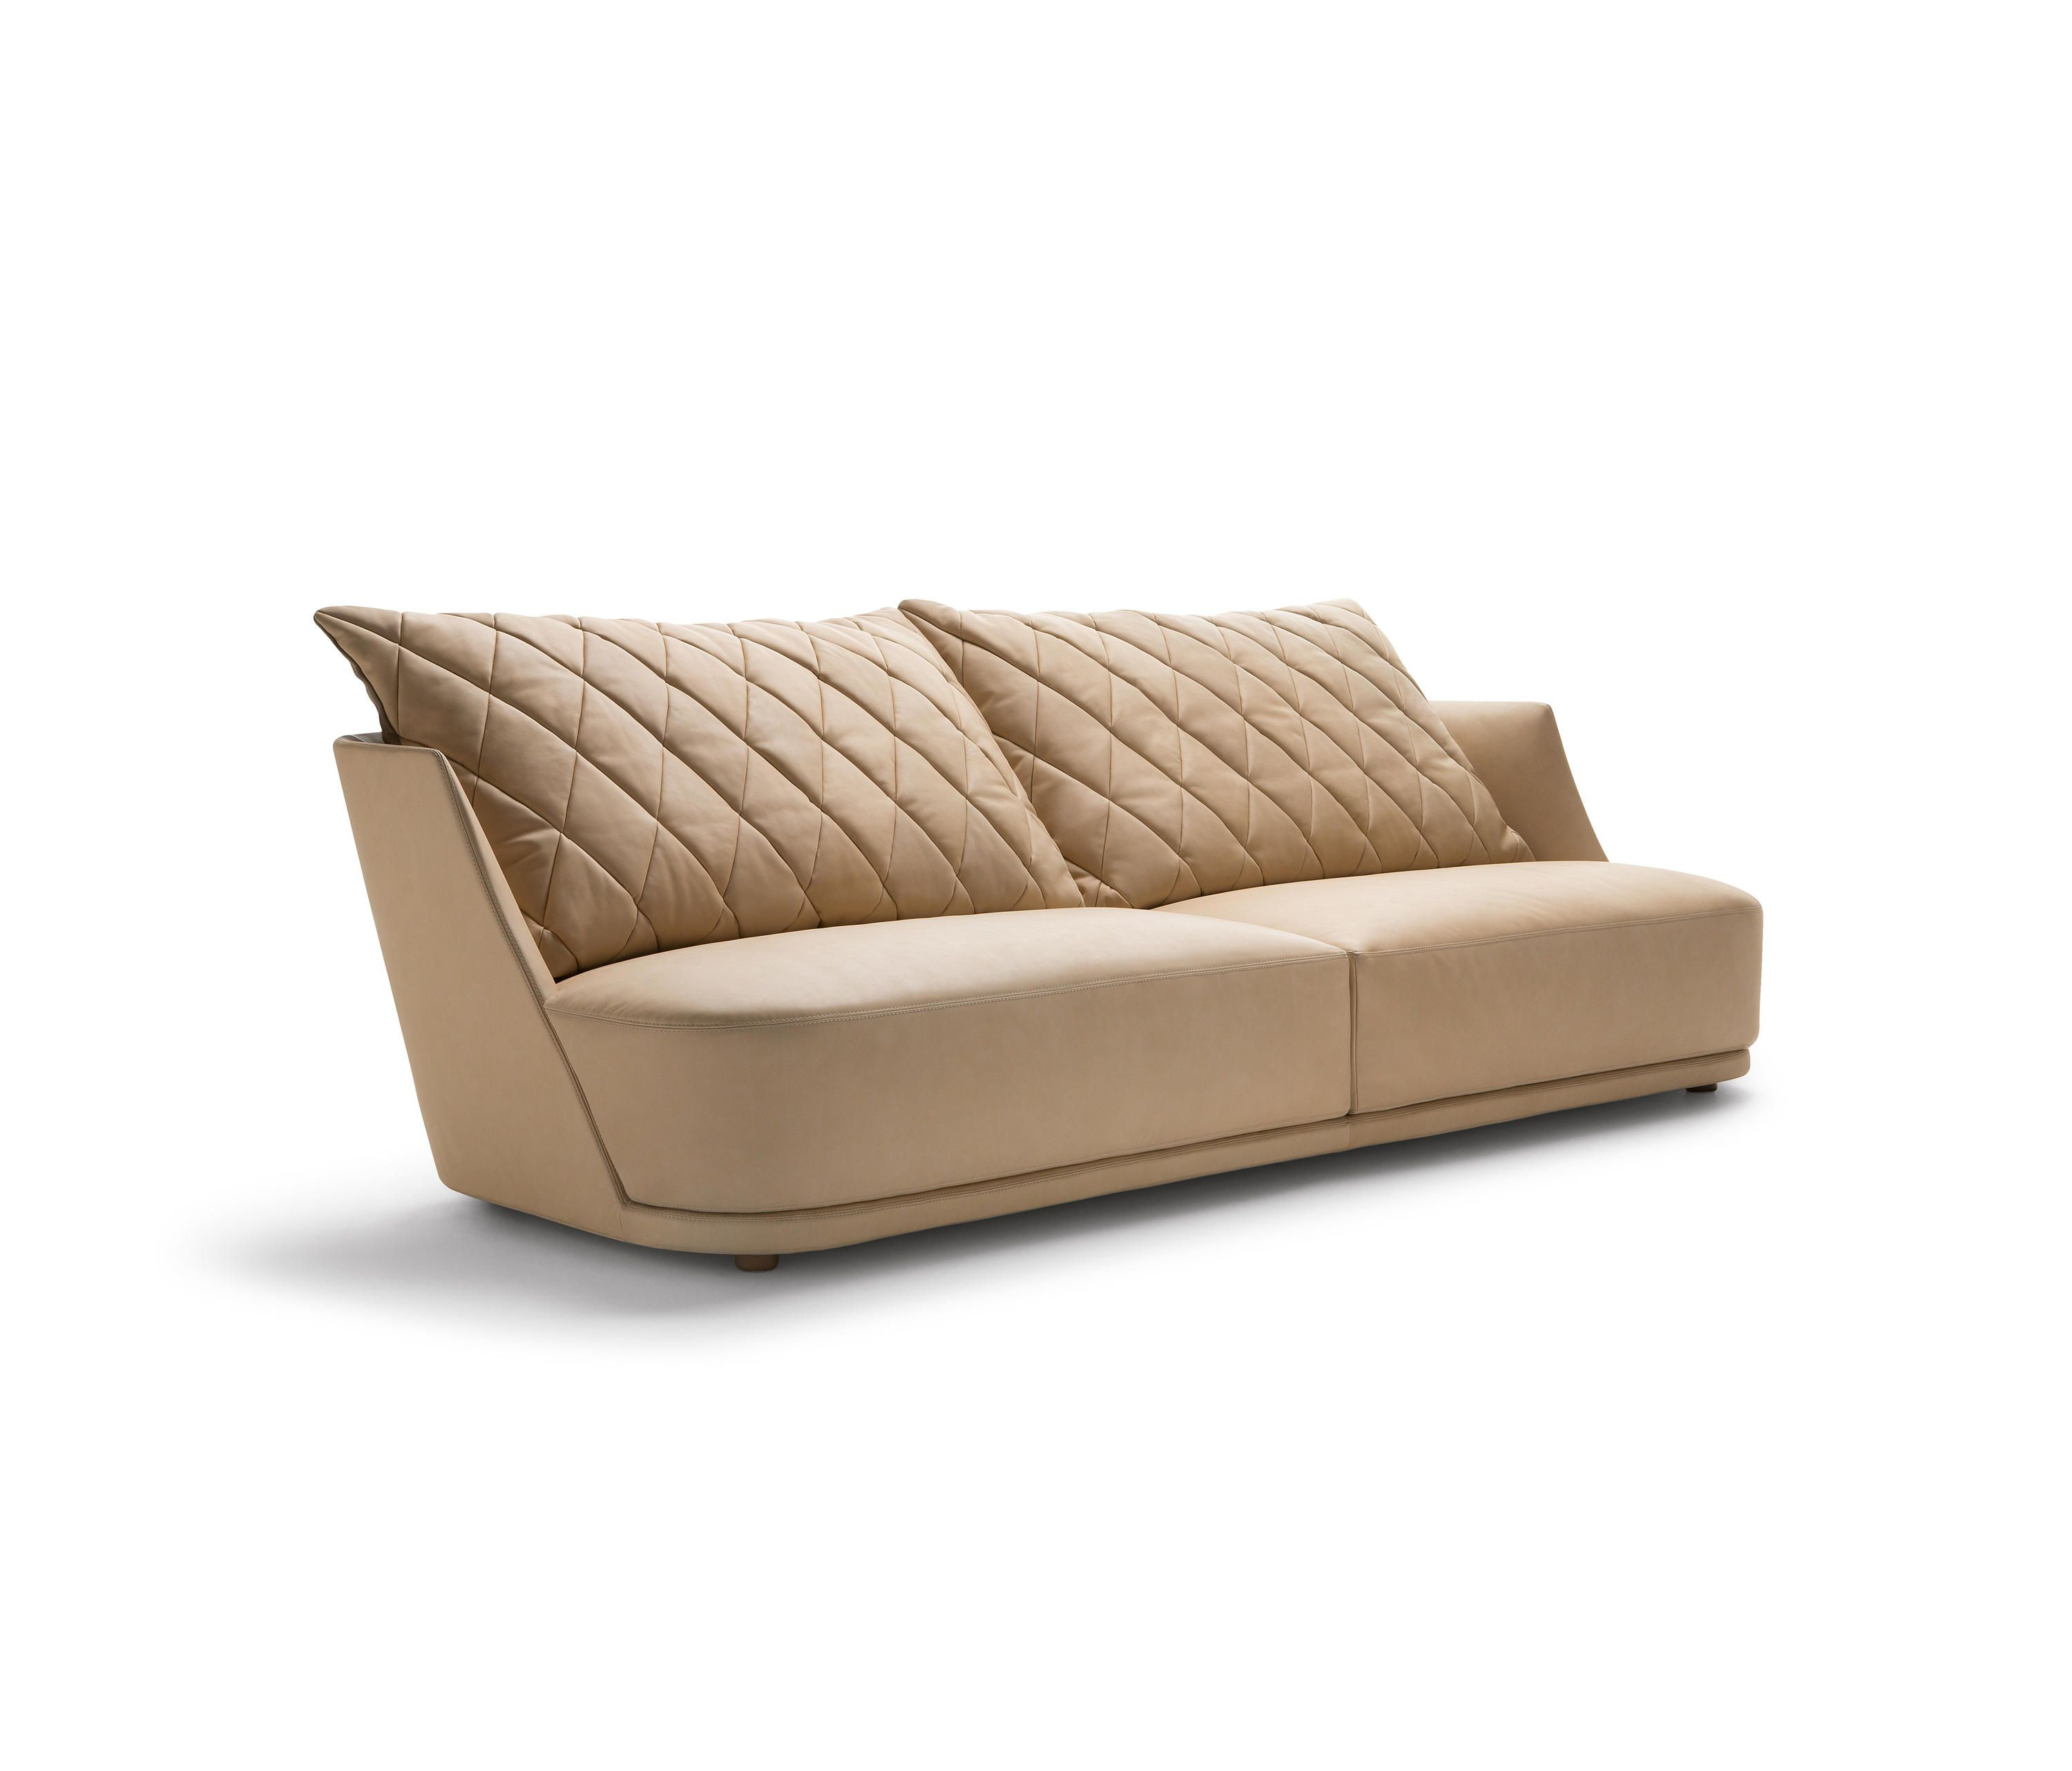 Grace – Sofasalberta Pacific Furniture | Architonic | Dw单位沙发 In Grace Sofa Chairs (Image 6 of 25)